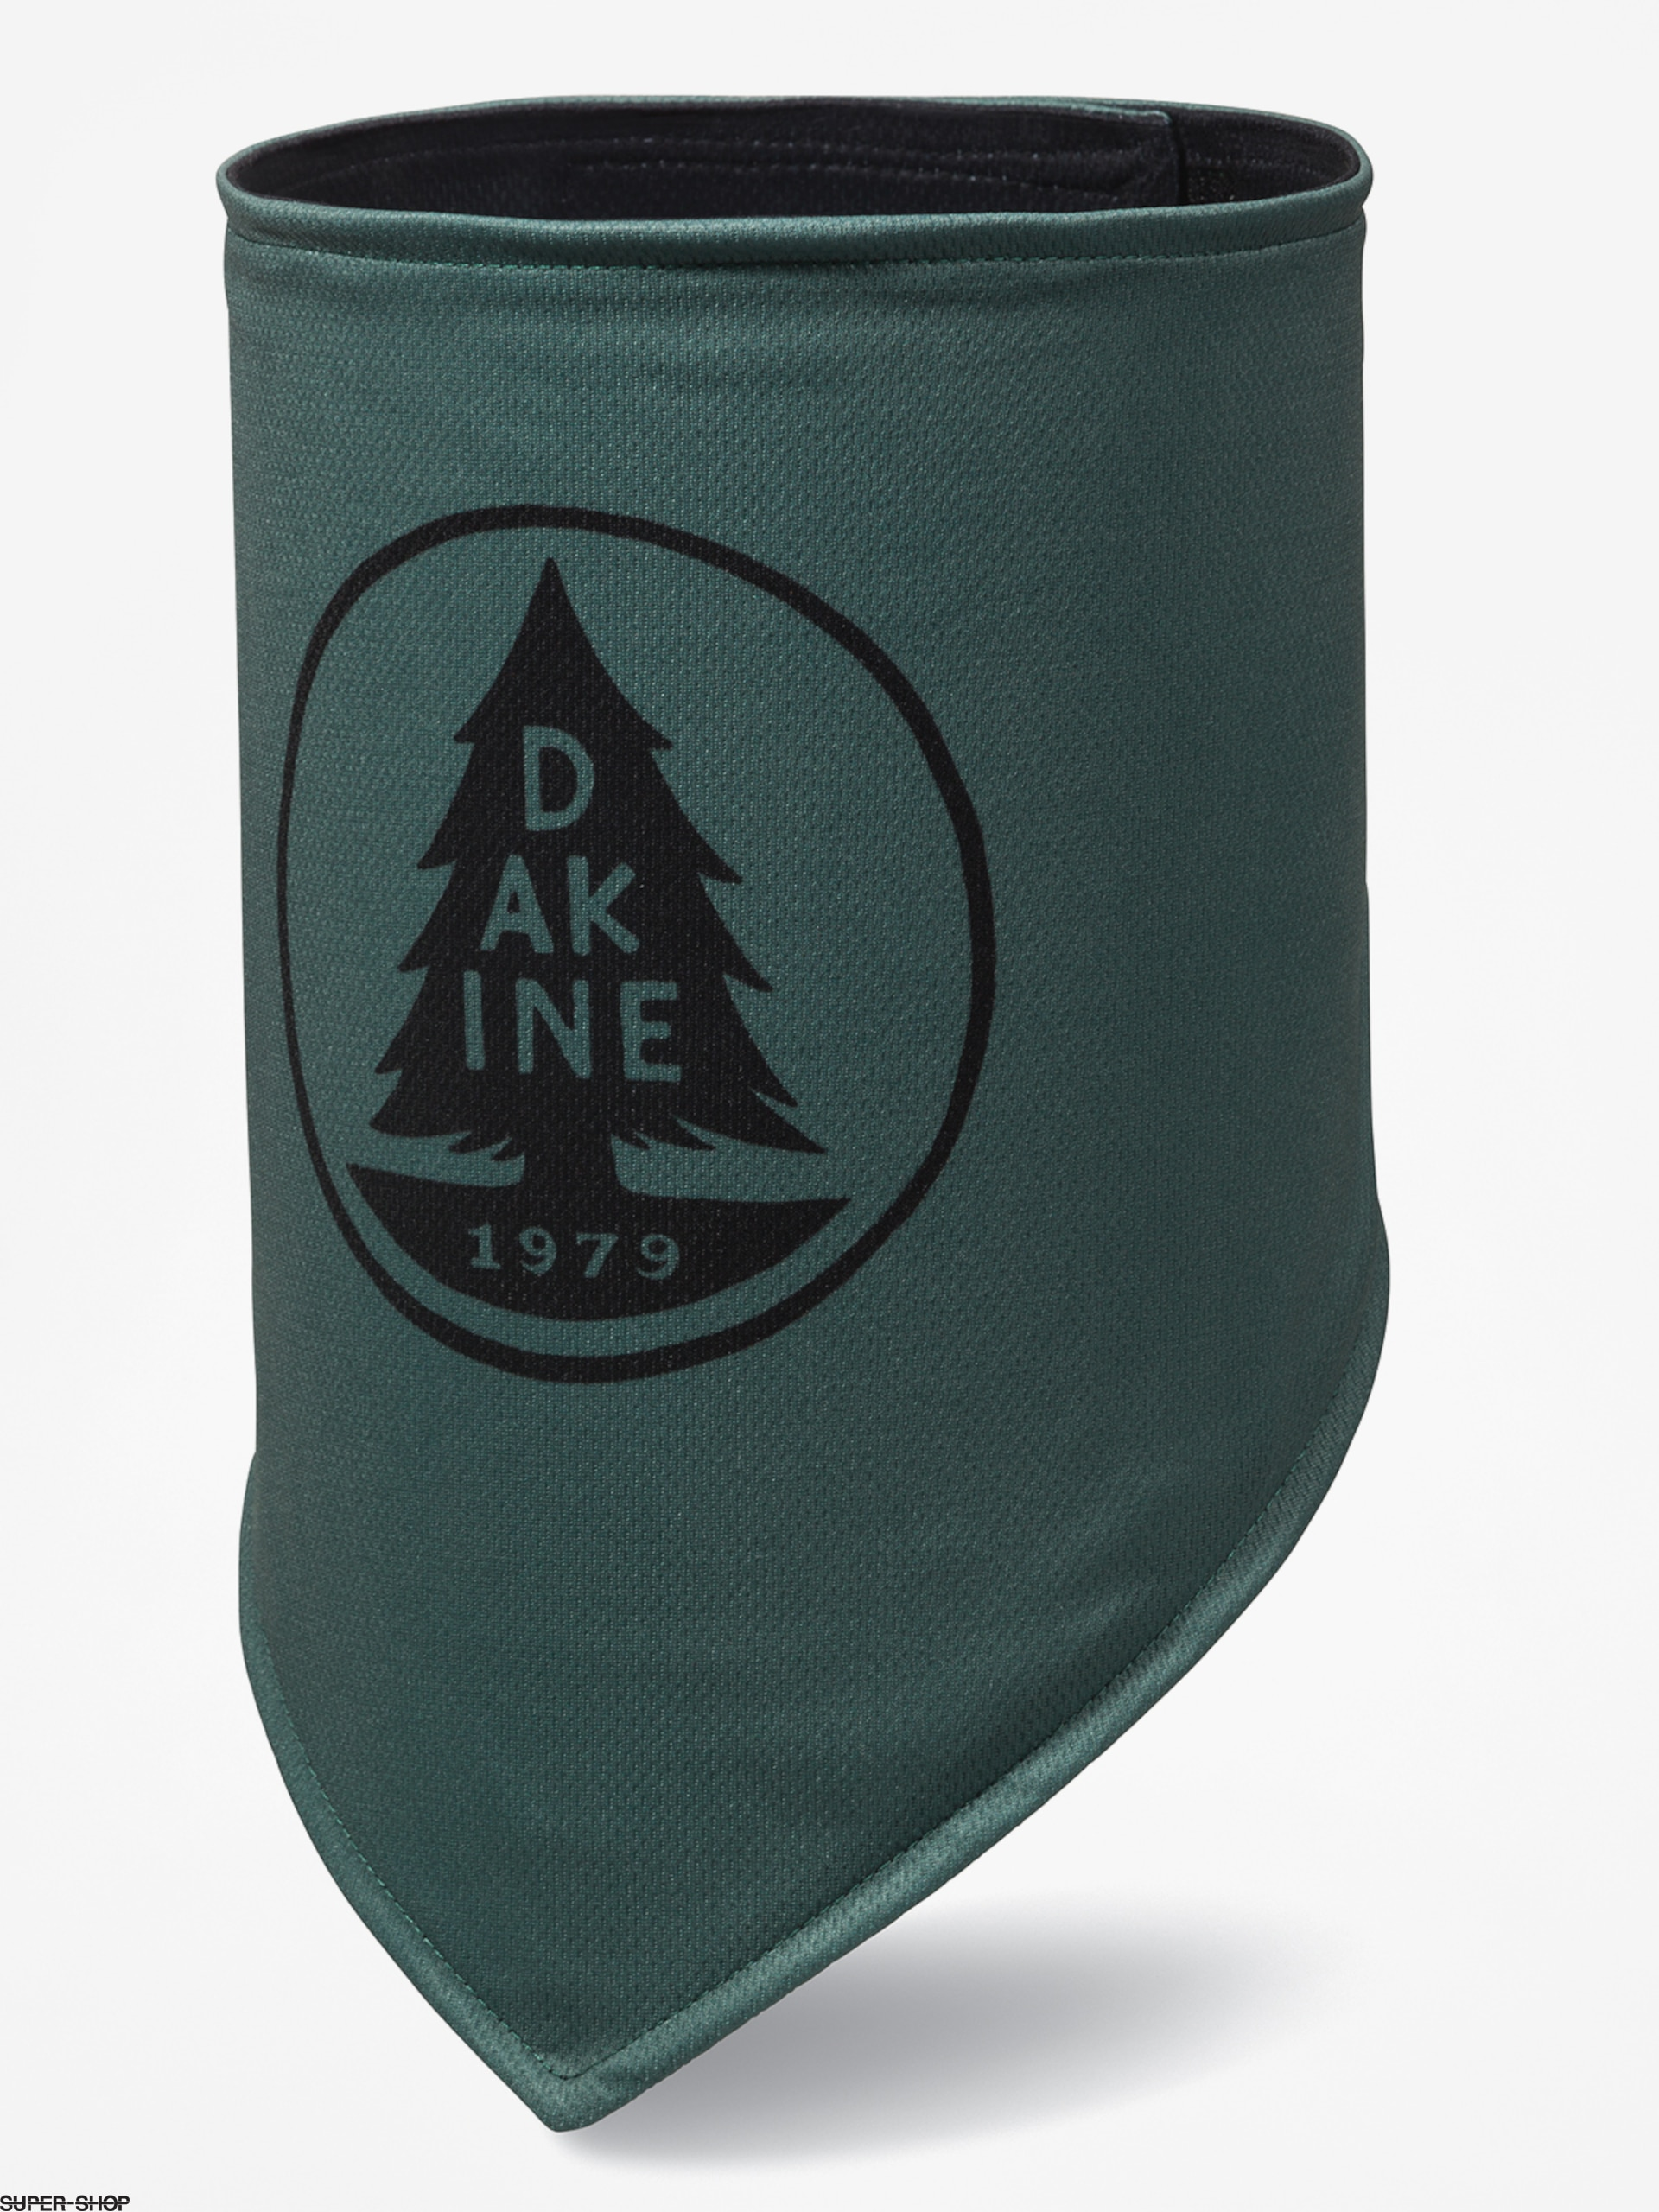 Dakine Neckwarmer Hoodlum Face Mask (surplus)